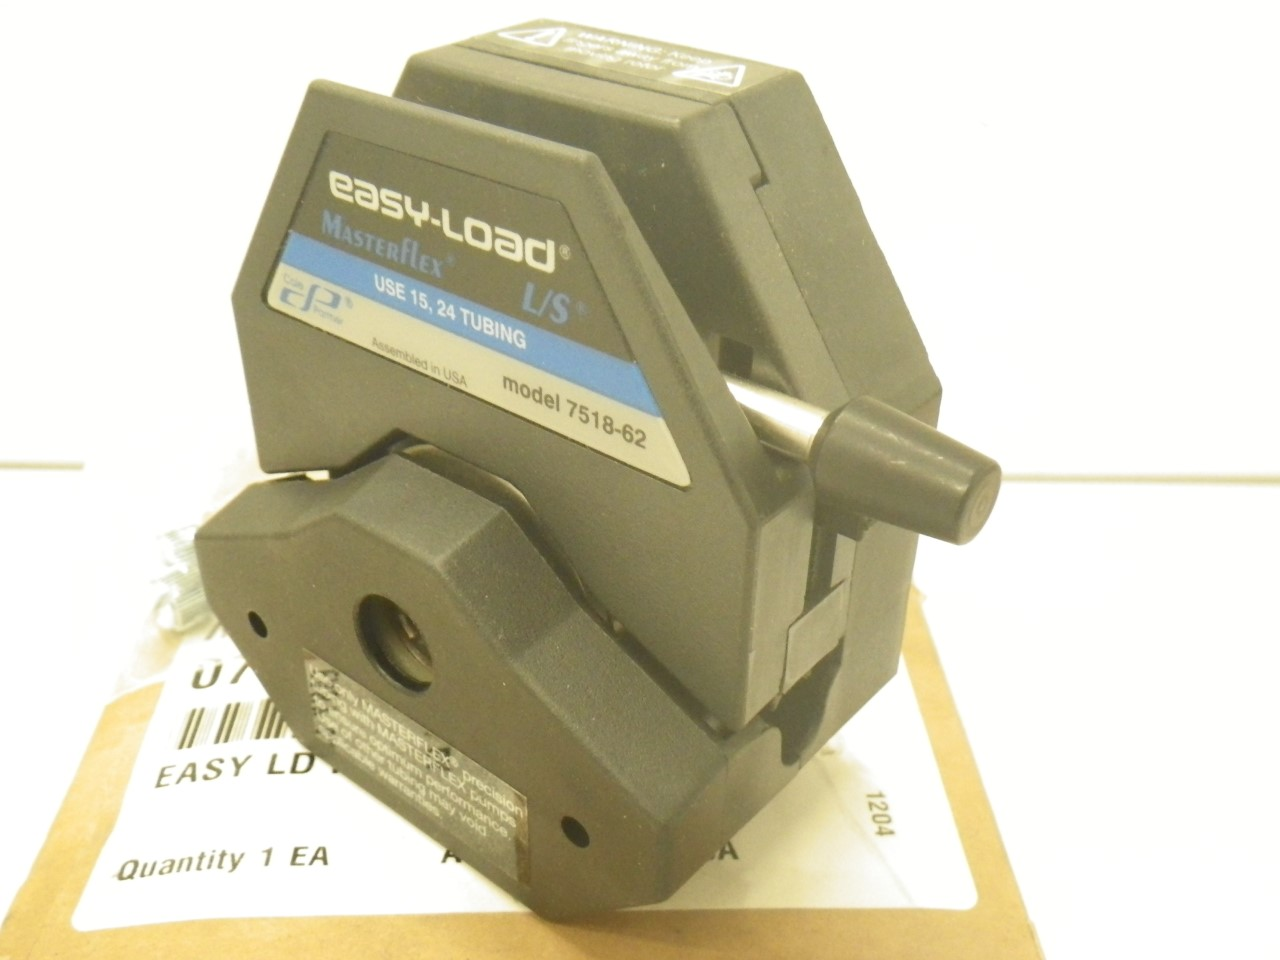 IMGP11207518-62 Cole Parmer Easy-load Masterflex Ls 7518-62 Pump Head (New with Box) (17)